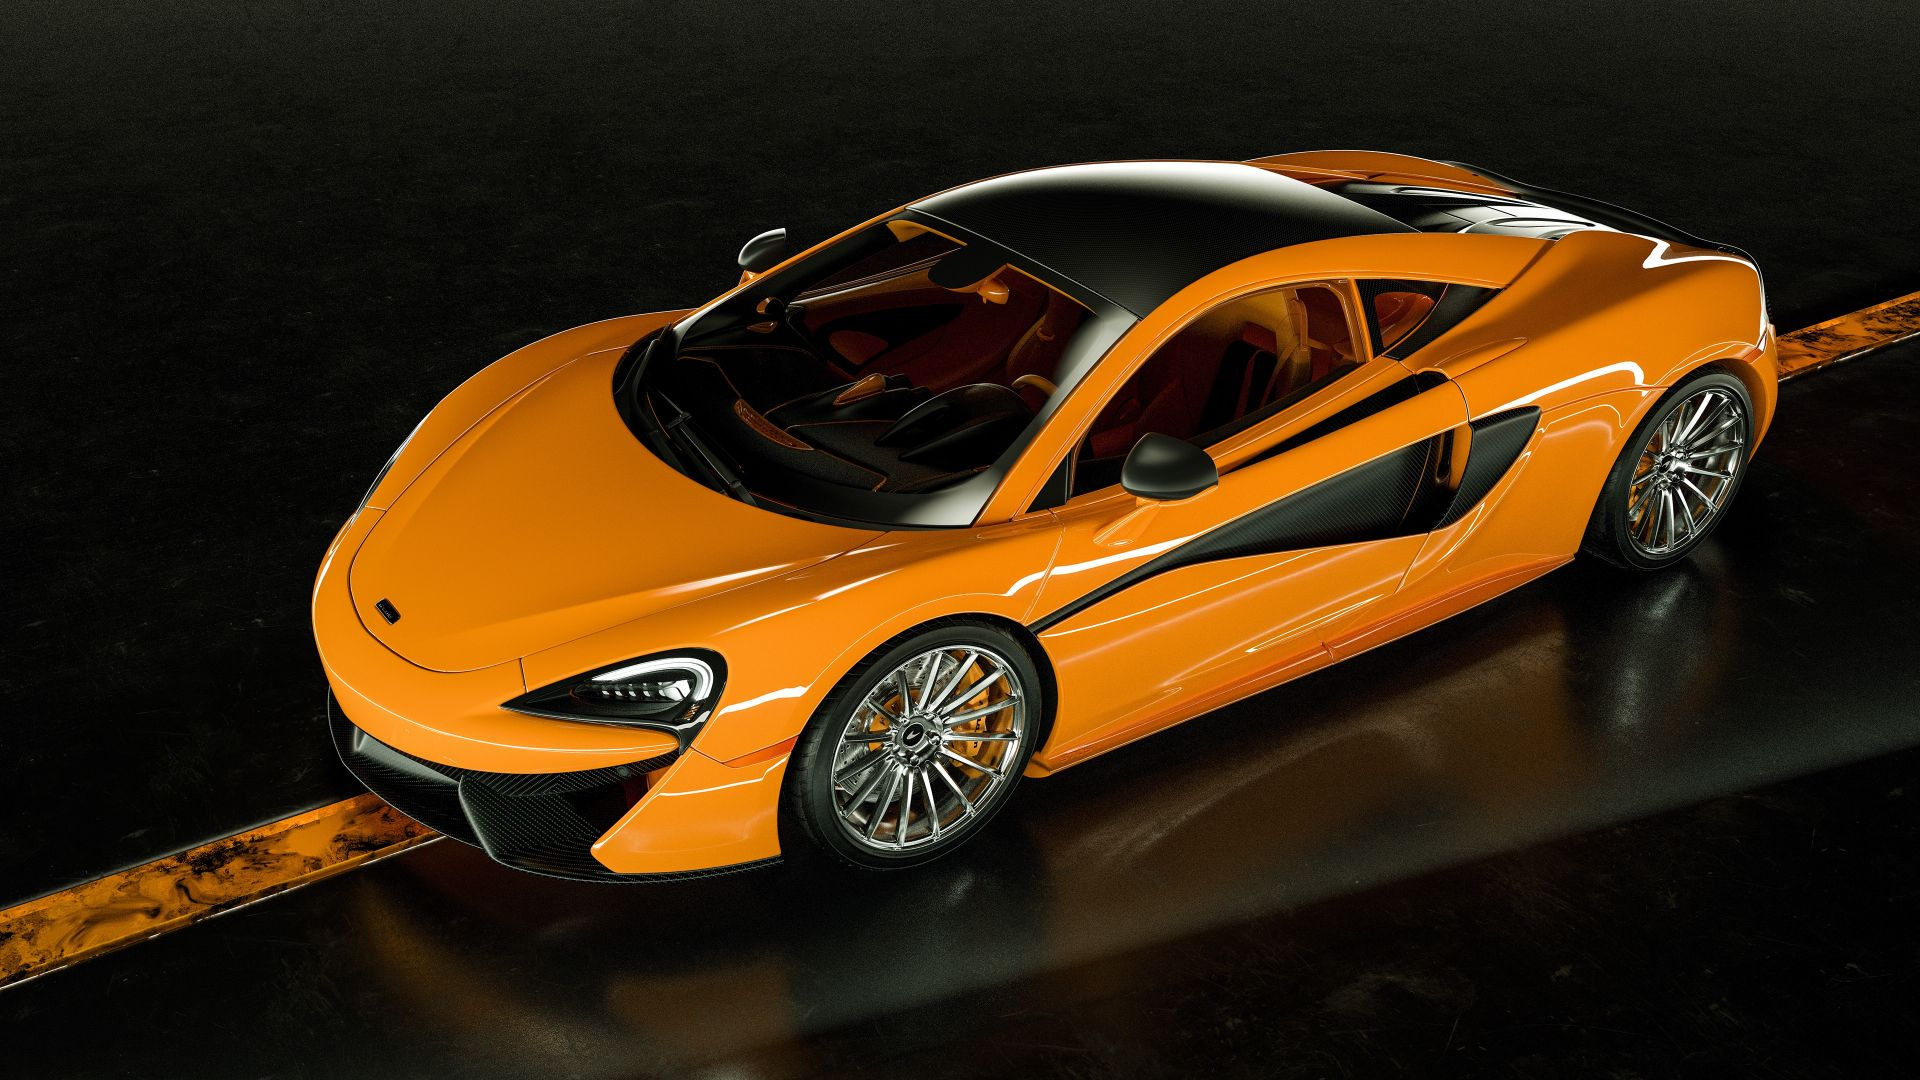 McLaren 570S, 2019 Cars, supercar, luxury cars, 4K (horizontal)